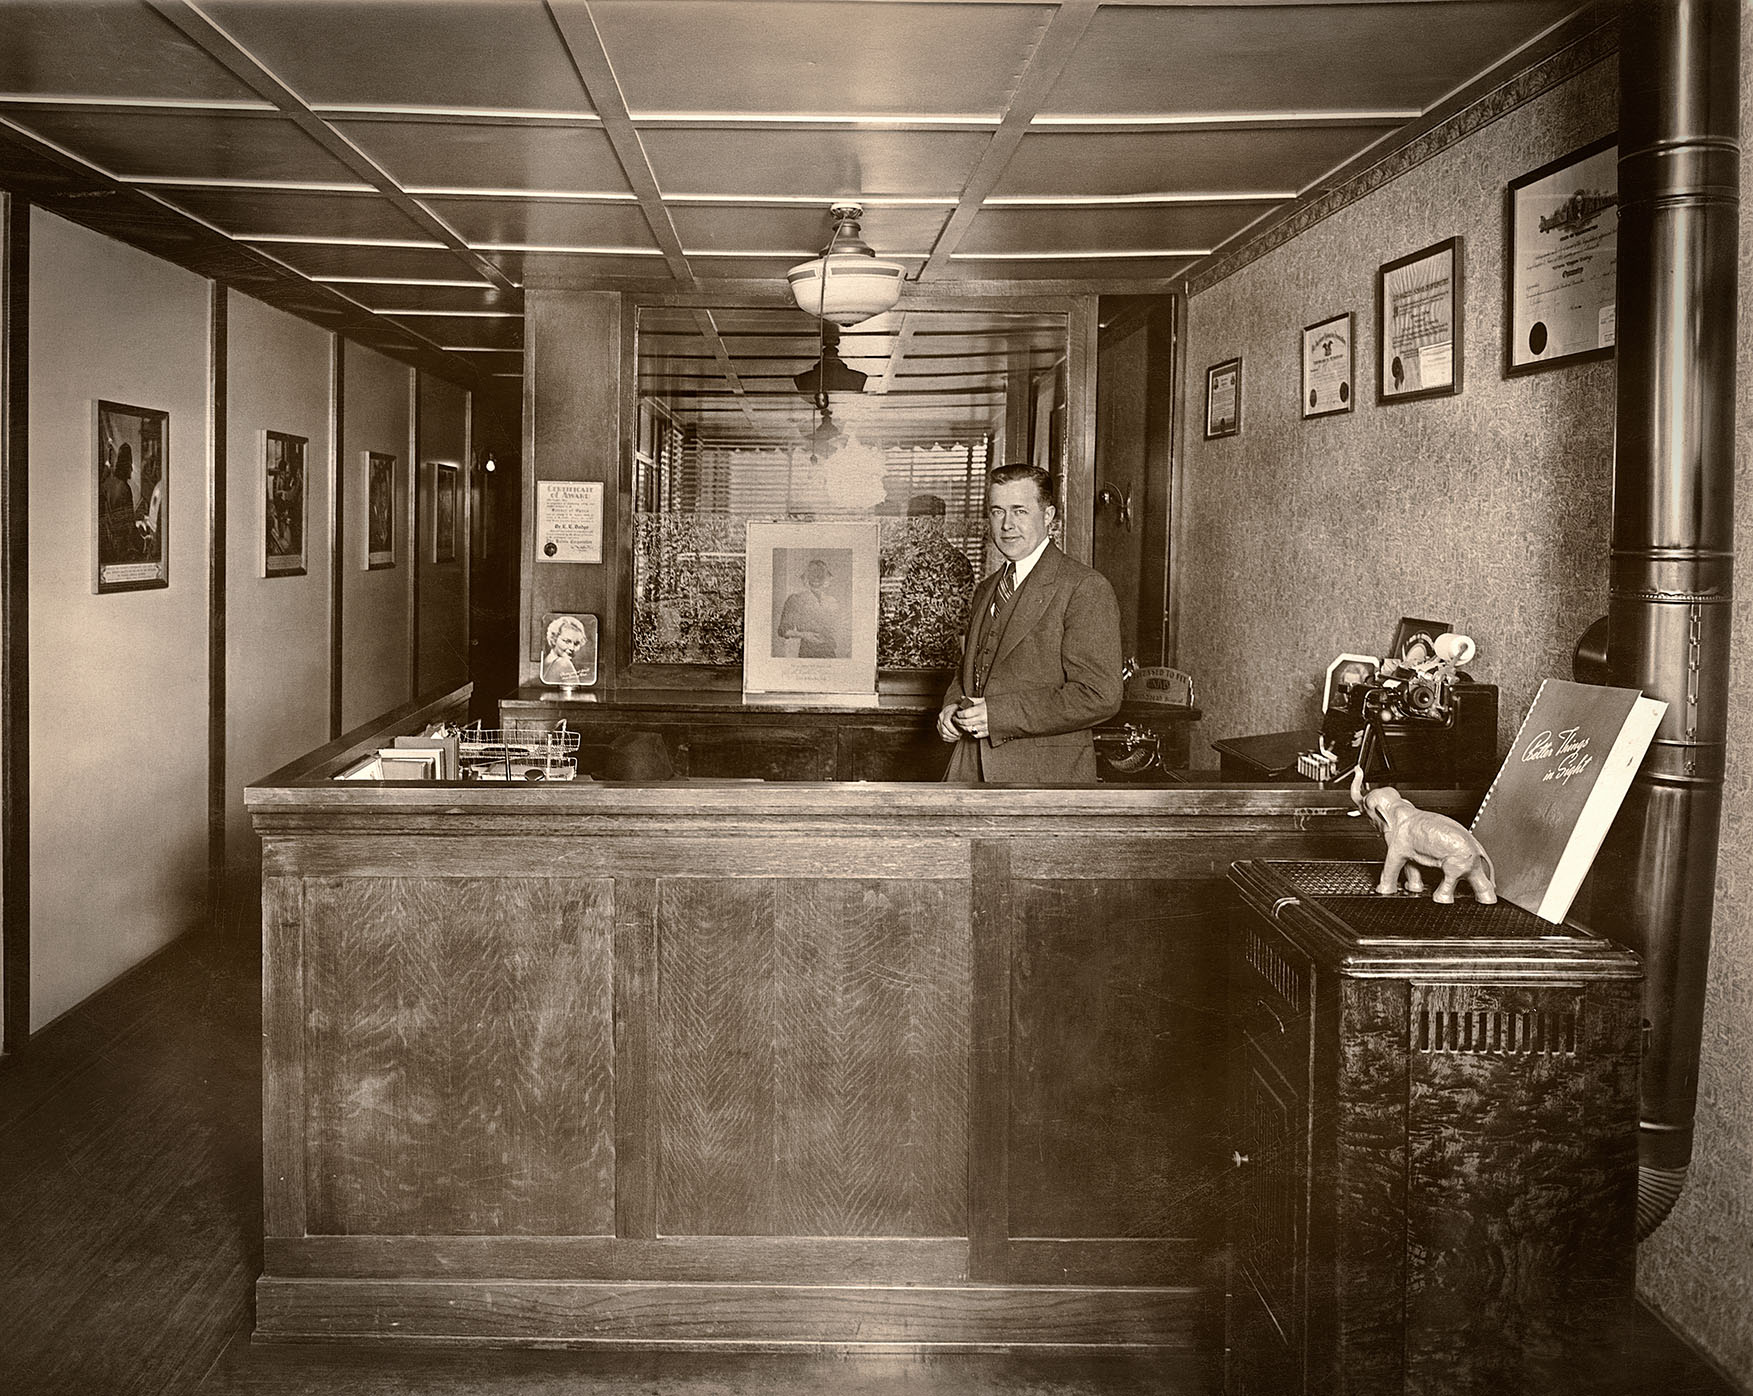 Dr. E. E. Dodge at 712 Commercial Avenue